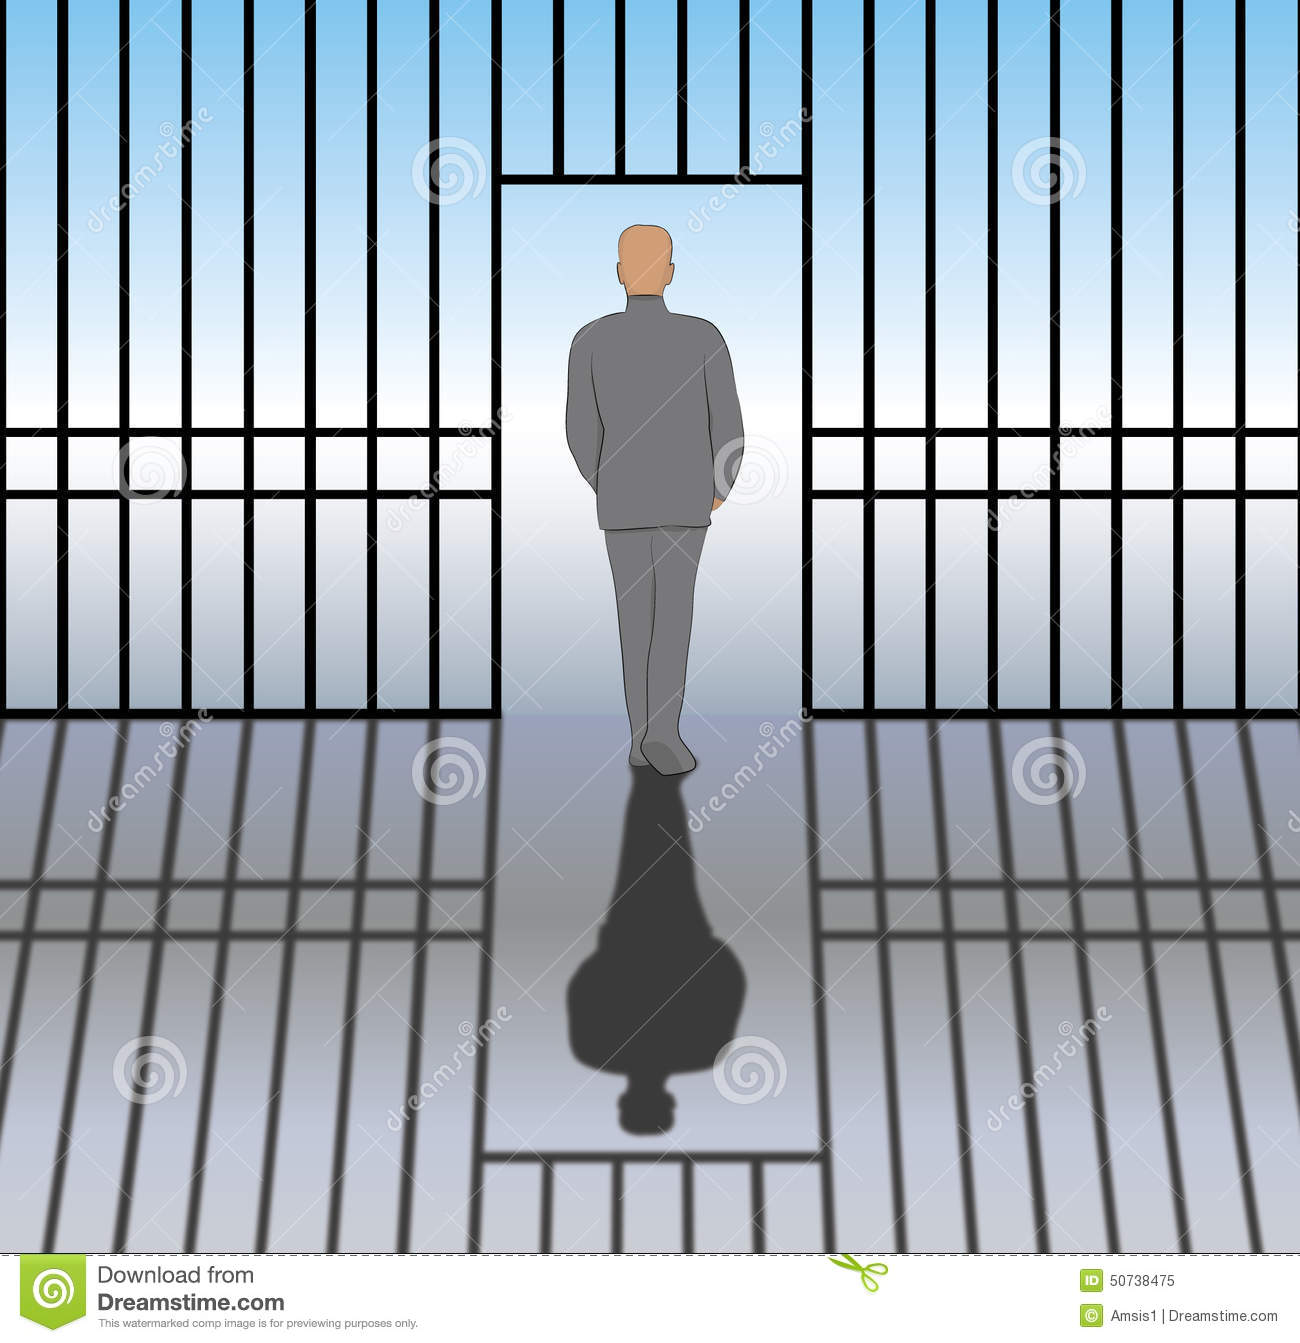 Released From Prison Stock Illustration - Image: 50738475